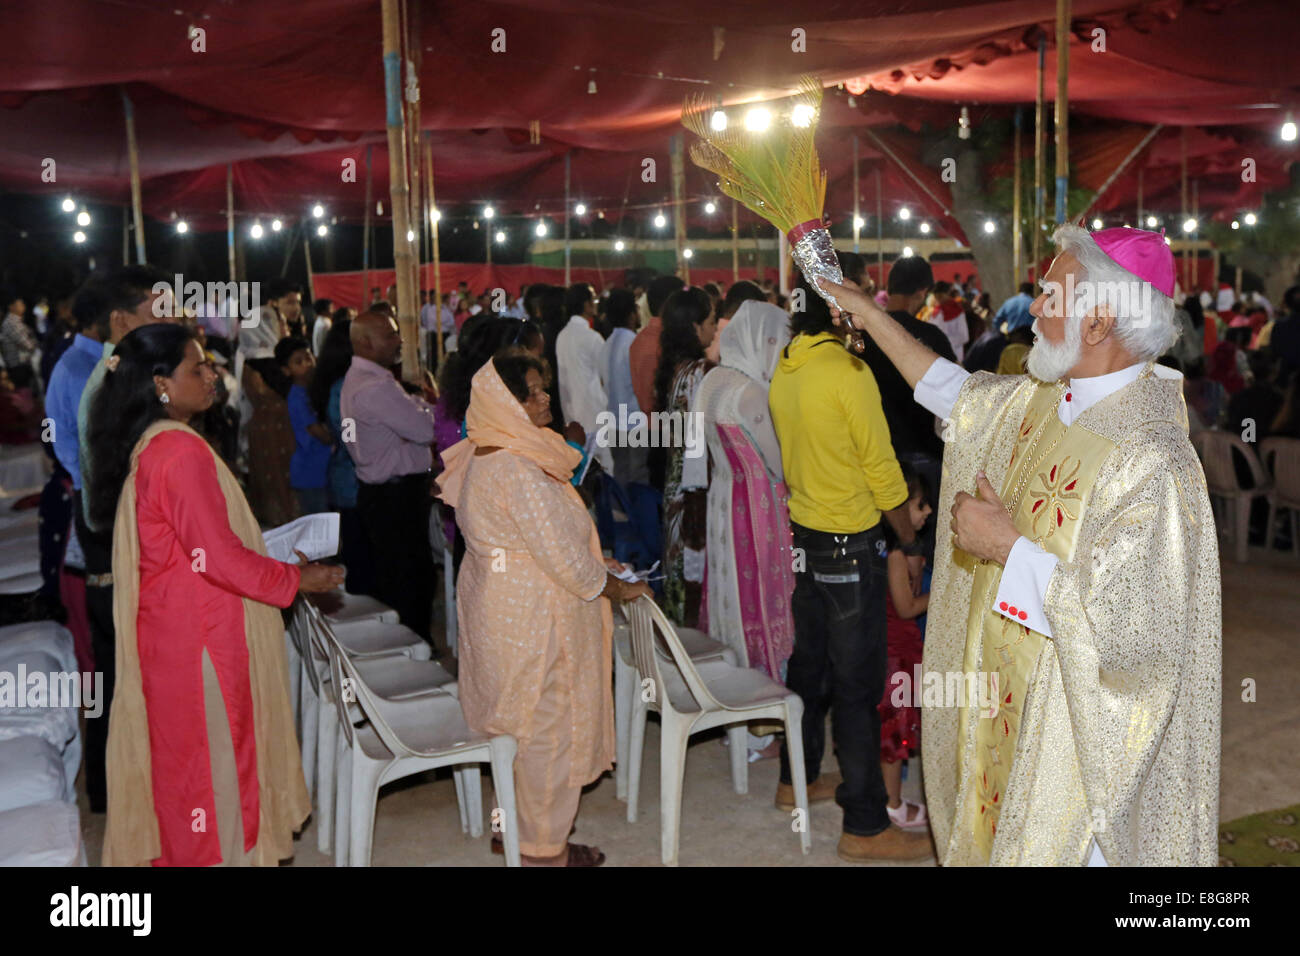 roman catholic Archbishop Joseph COUTTS of Karachi blesses believers during the easter mass outside Saint Patrick´s - Stock Image